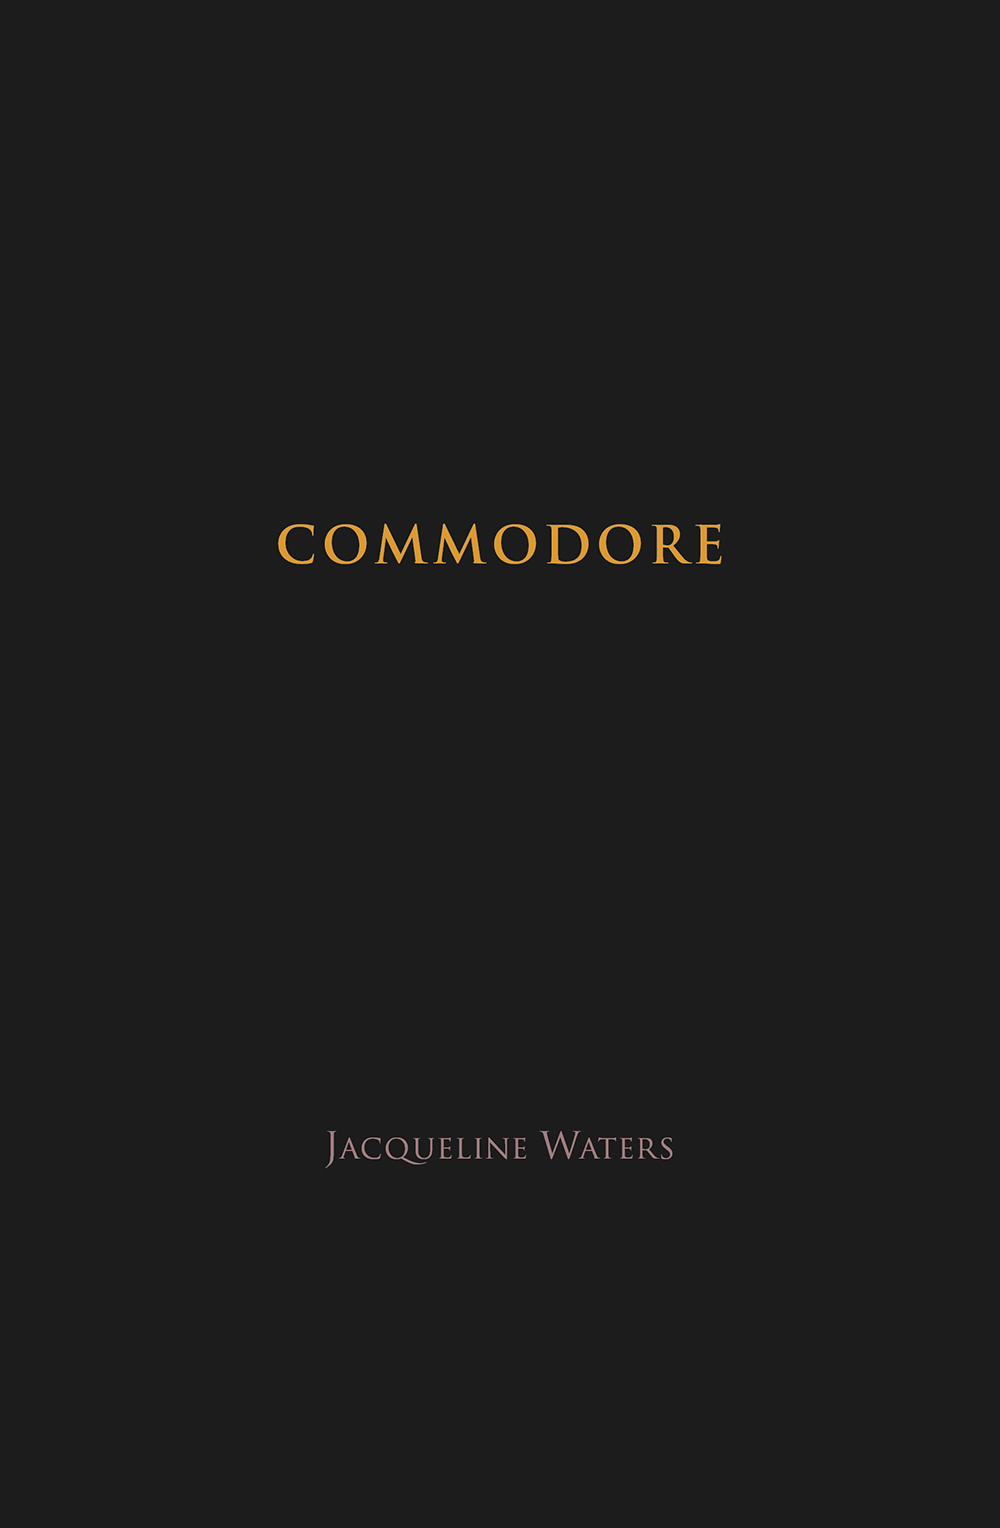 Commodore   by Jacqueline Waters  drawings by Selina Reber   Ugly Duckling Presse , 88 pages, December 1, 2017